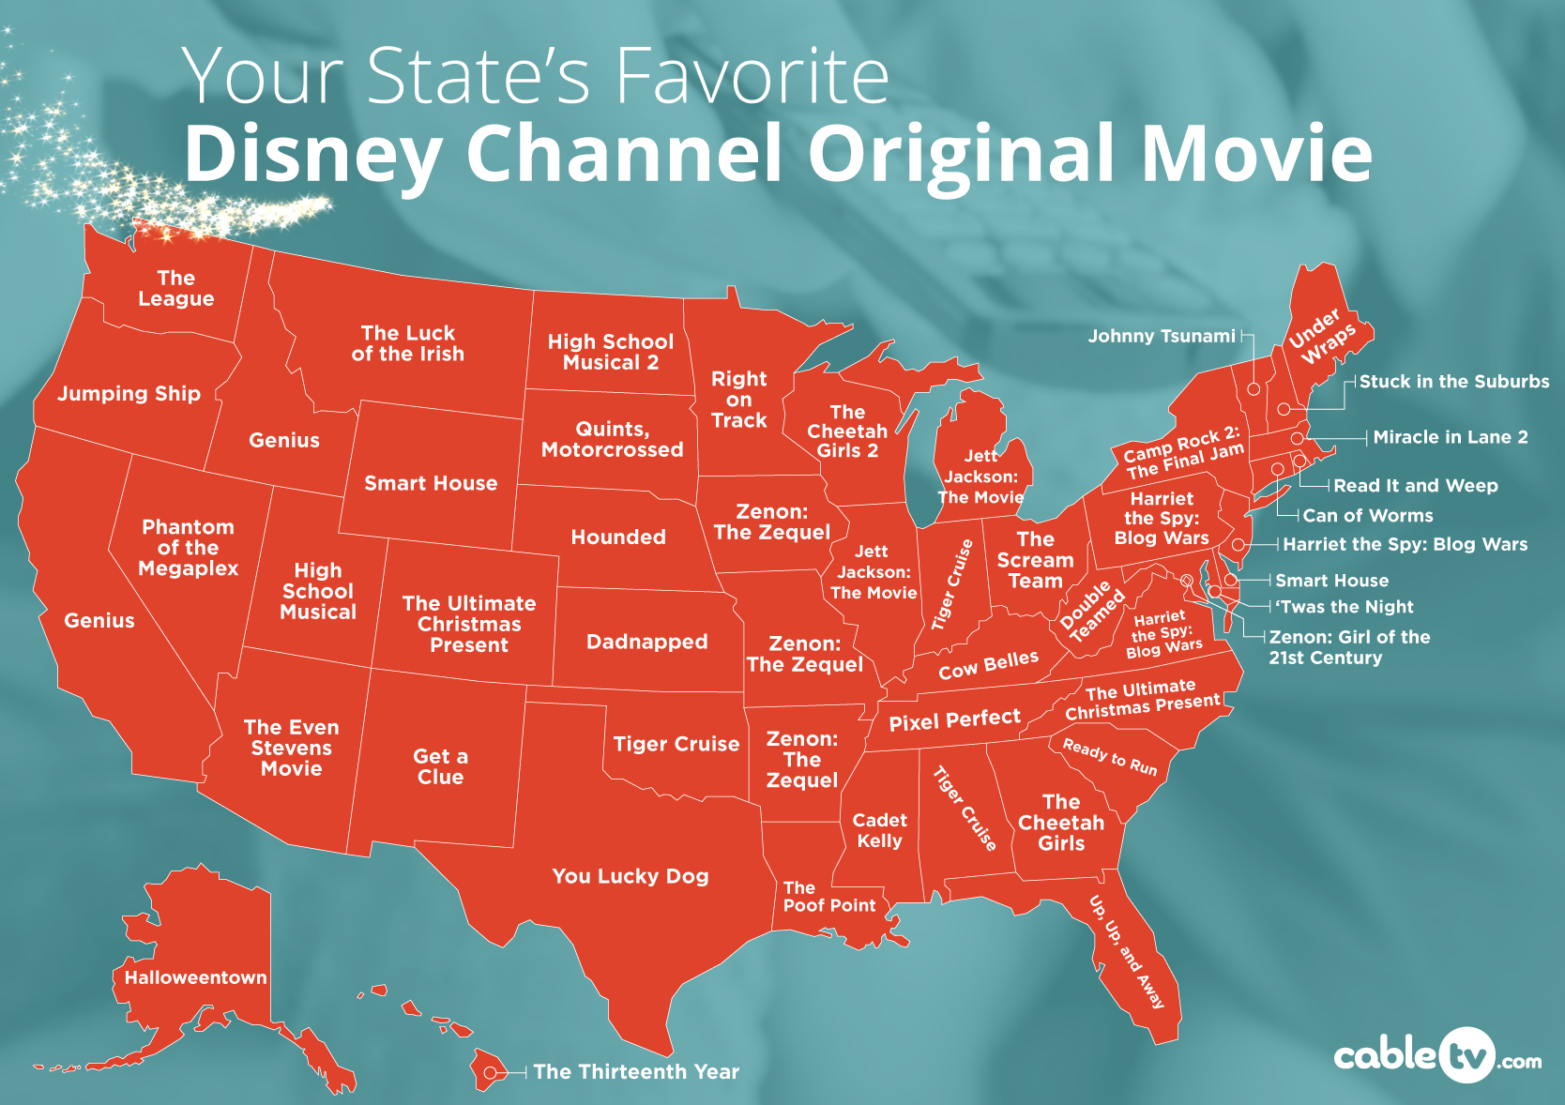 Most Popular Disney Channel Original Movie in Your State Map